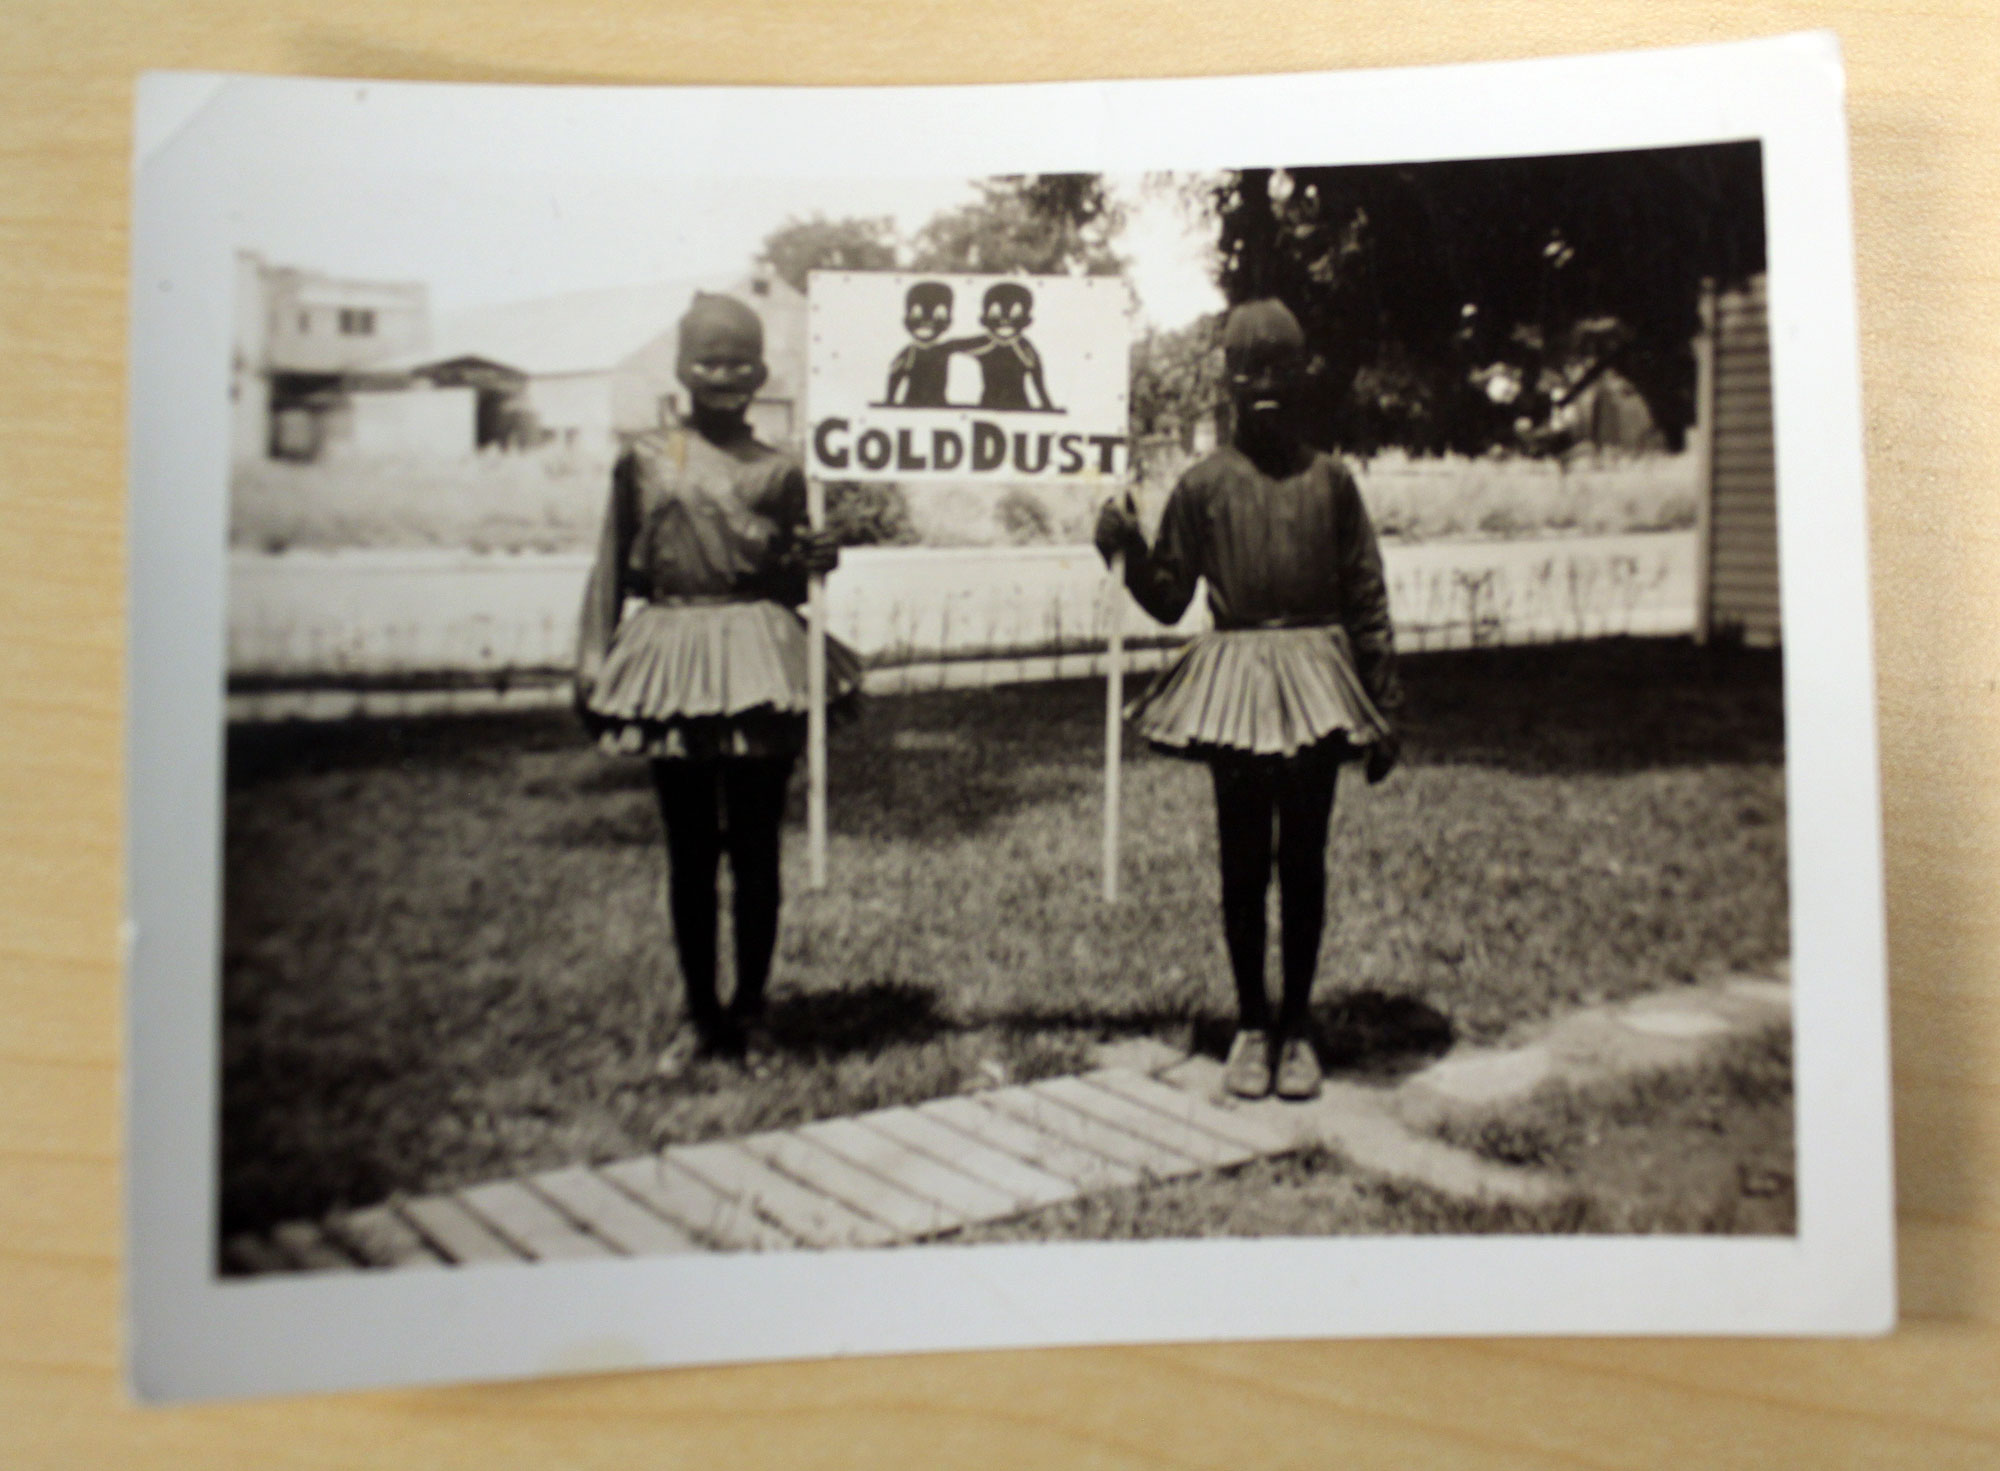 Averill remembers moving to Topeka in 1953 from California and recalls that his father grew up in the 1930s. Discusses a photograph he found of his father, Stuart Carson Averill, dressed up as the Gold Dust twins for a Rotary Club parade.